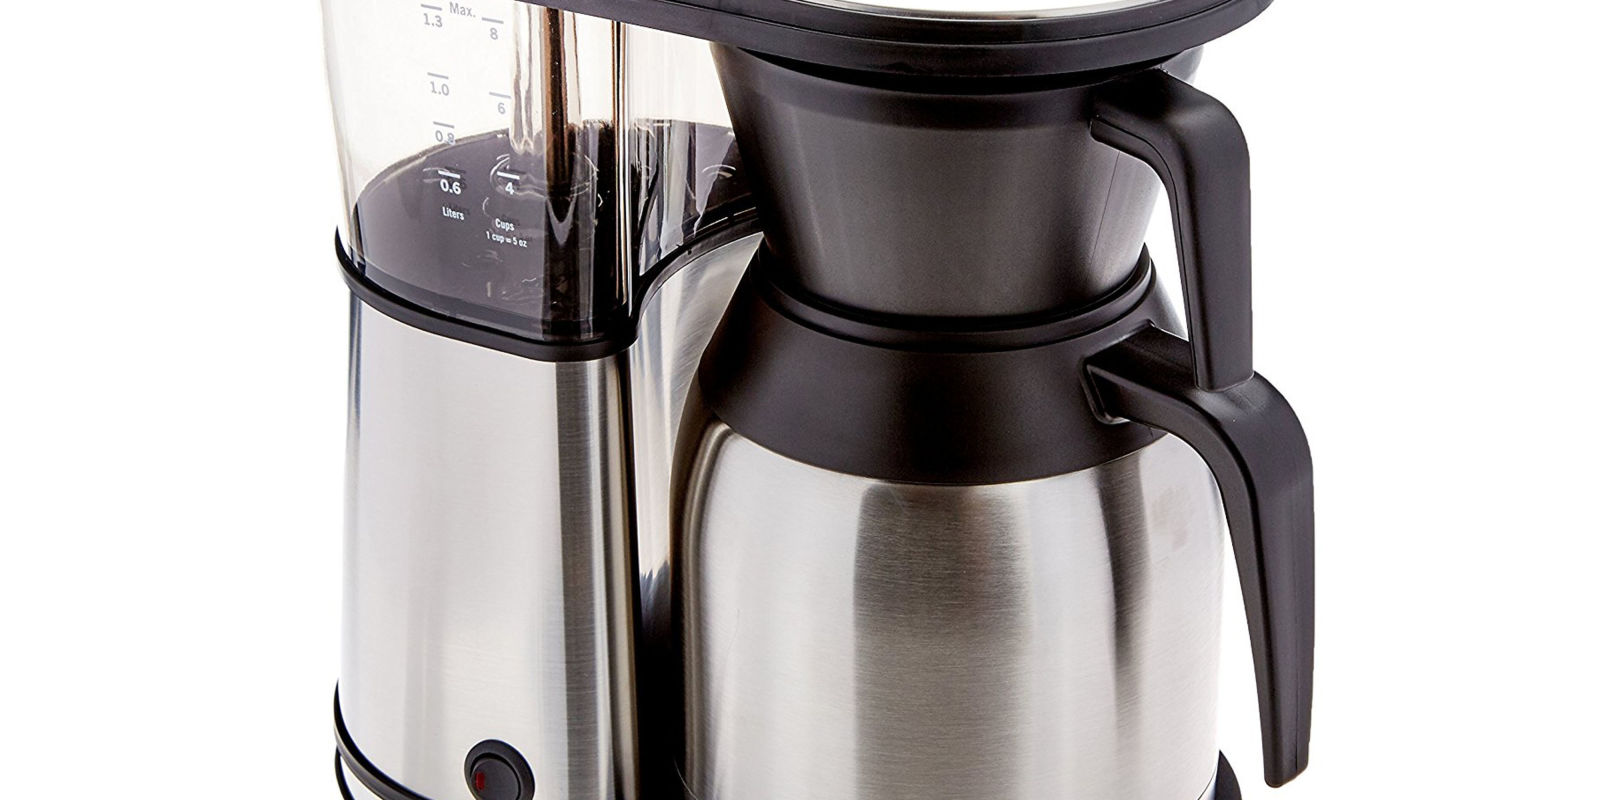 Bonavita Coffee Maker Cleaning